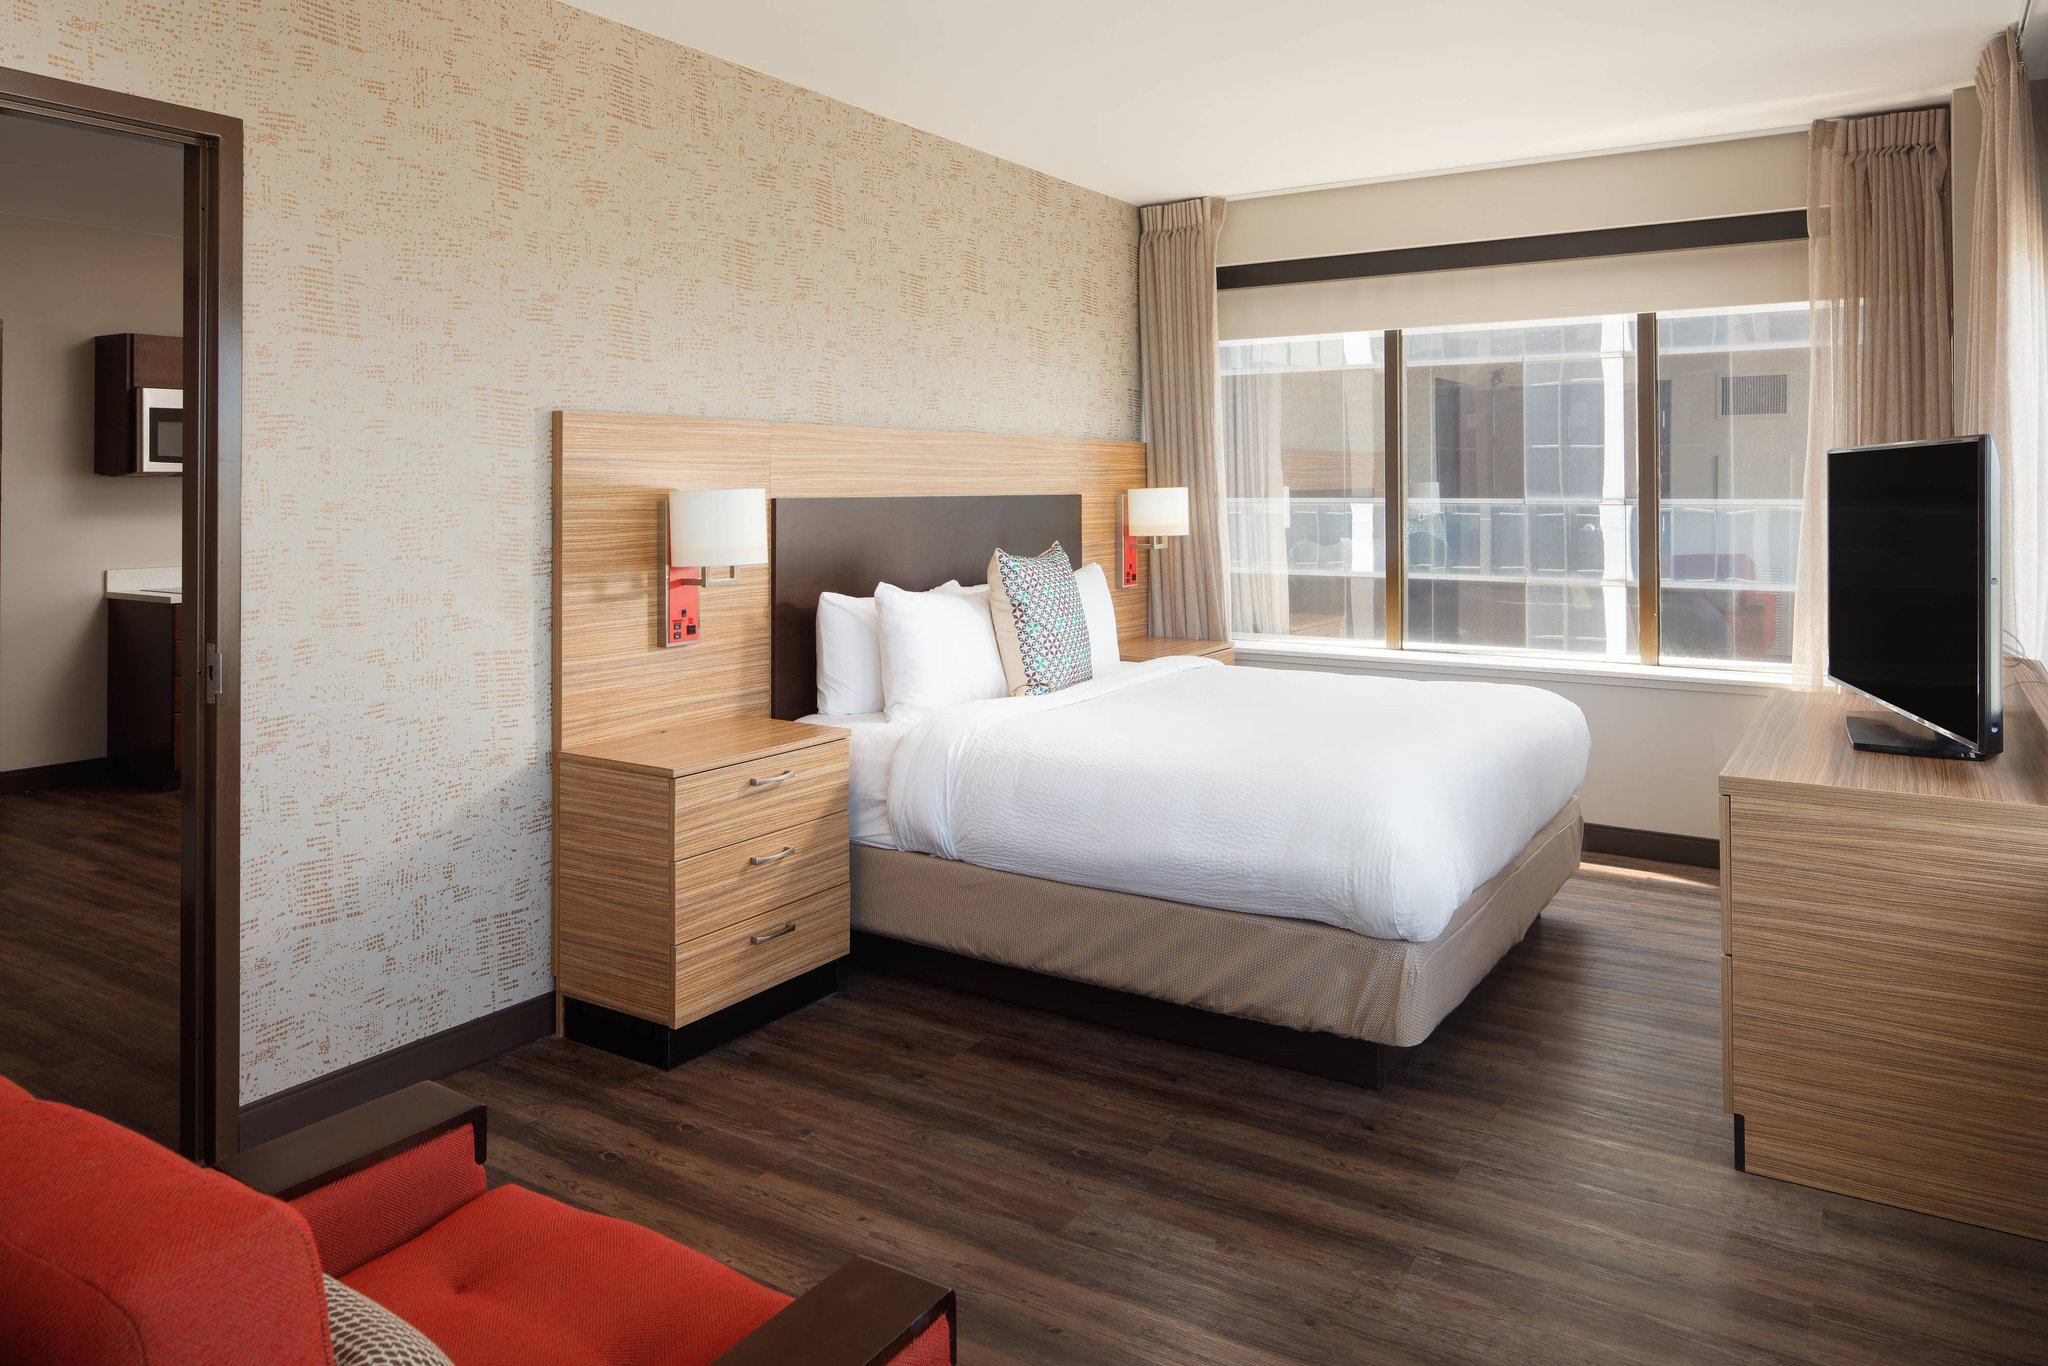 TownePlace Suites by Marriott New Orleans Downtown/Canal Street